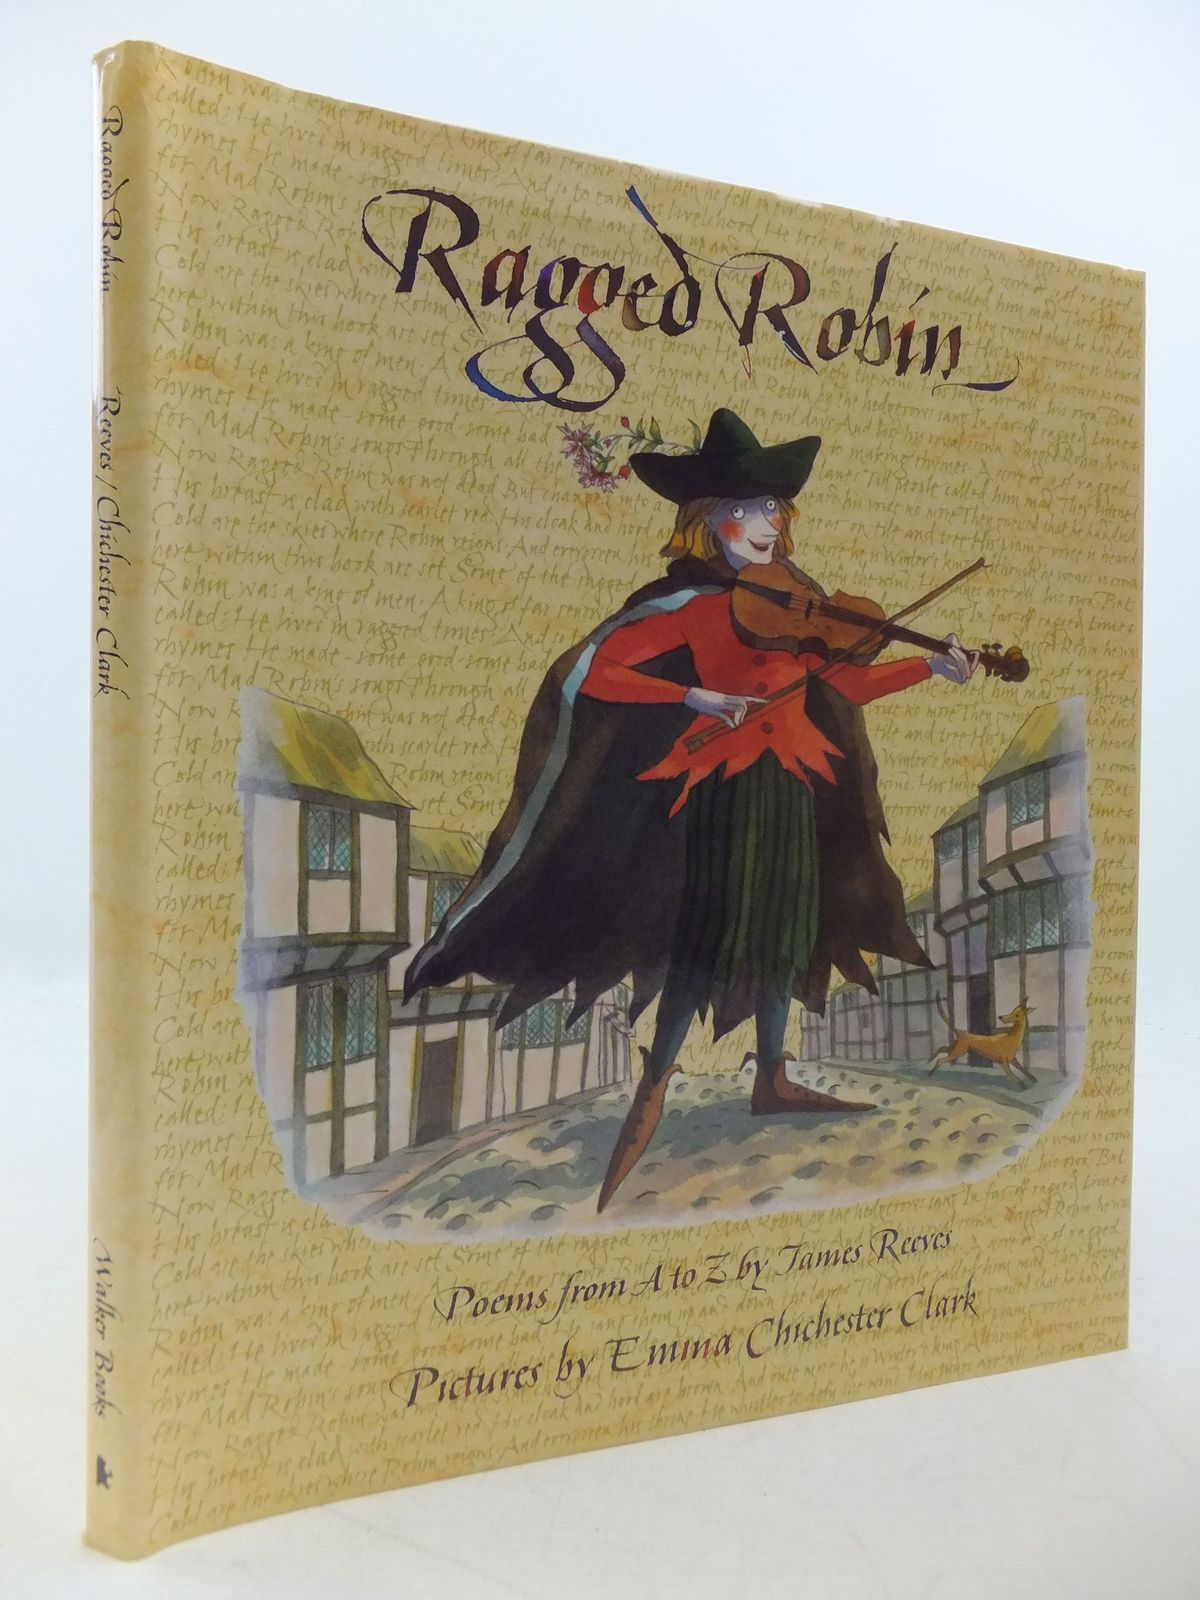 Photo of RAGGED ROBIN written by Reeves, James illustrated by Clark, Emma Chichester published by Walker Books (STOCK CODE: 1710162)  for sale by Stella & Rose's Books